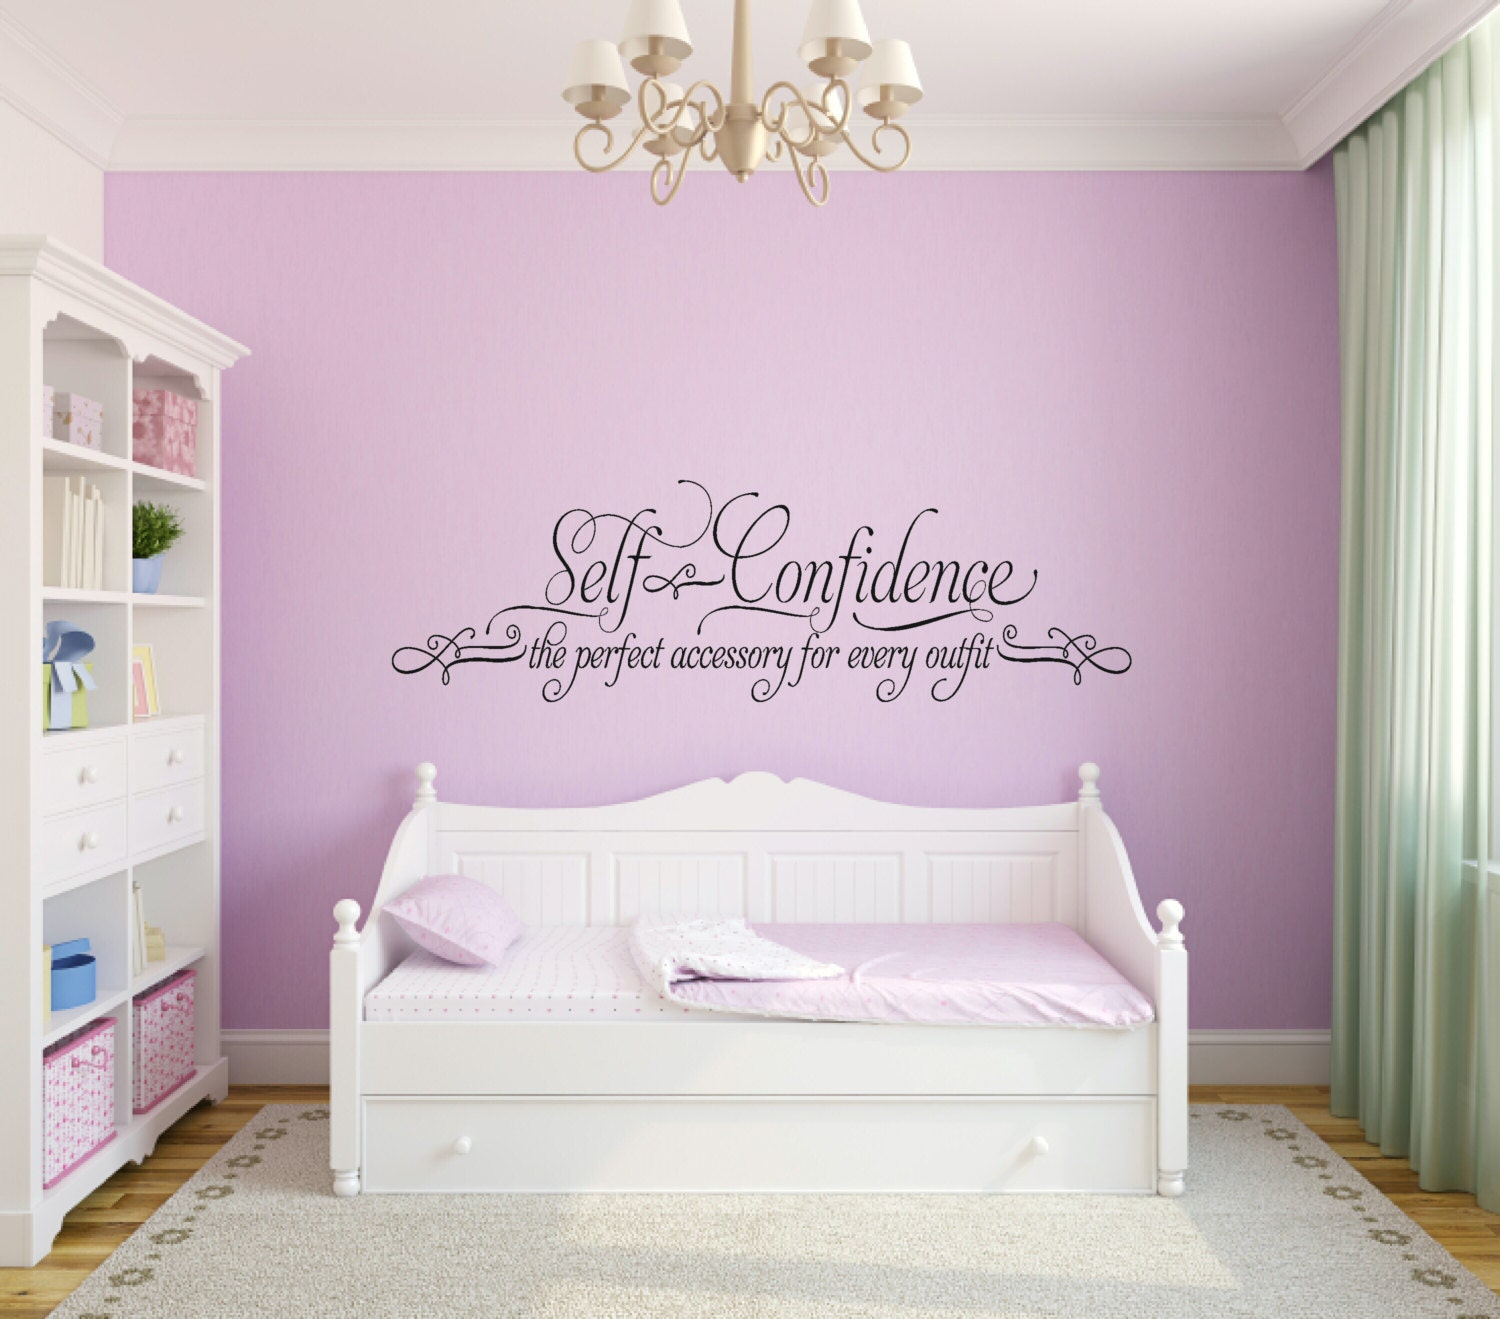 Self confidence wall decal girl bedroom wall decal teen girl description this is a great inspirational wall decal amipublicfo Gallery